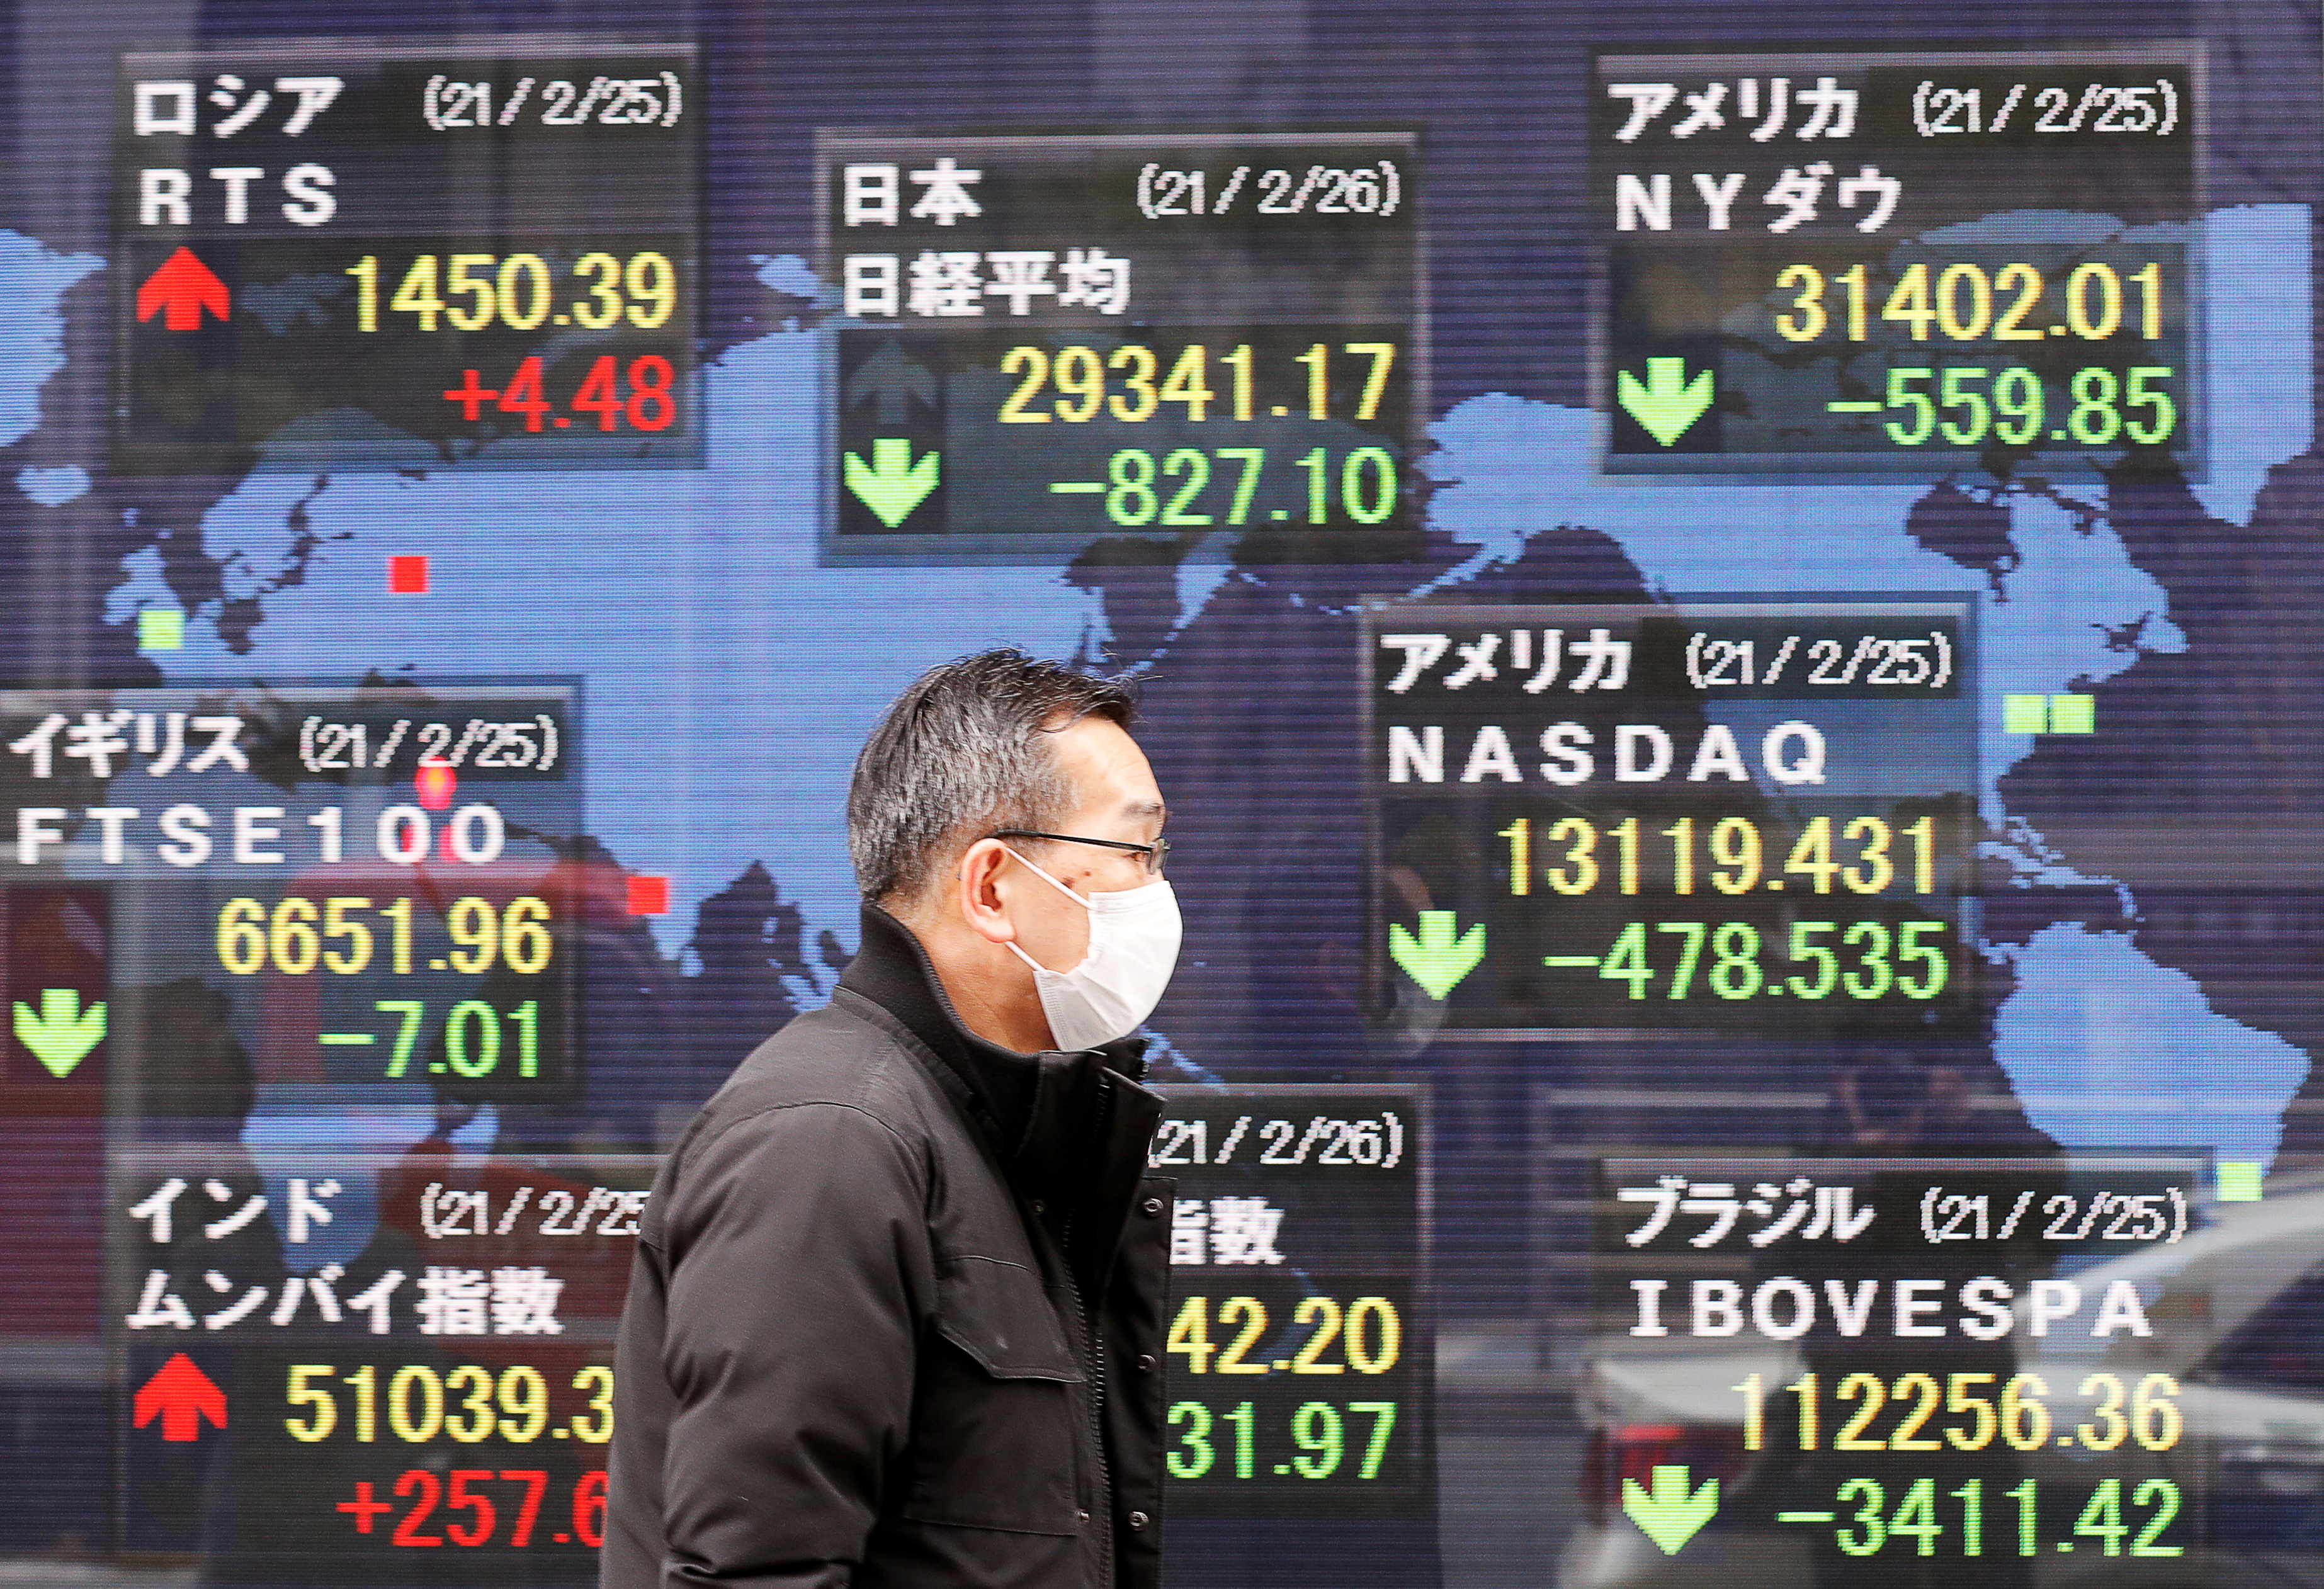 A man walks past a stock quotation board at a brokerage in Tokyo, Japan February 26, 2021. REUTERS/Kim Kyung-Hoon